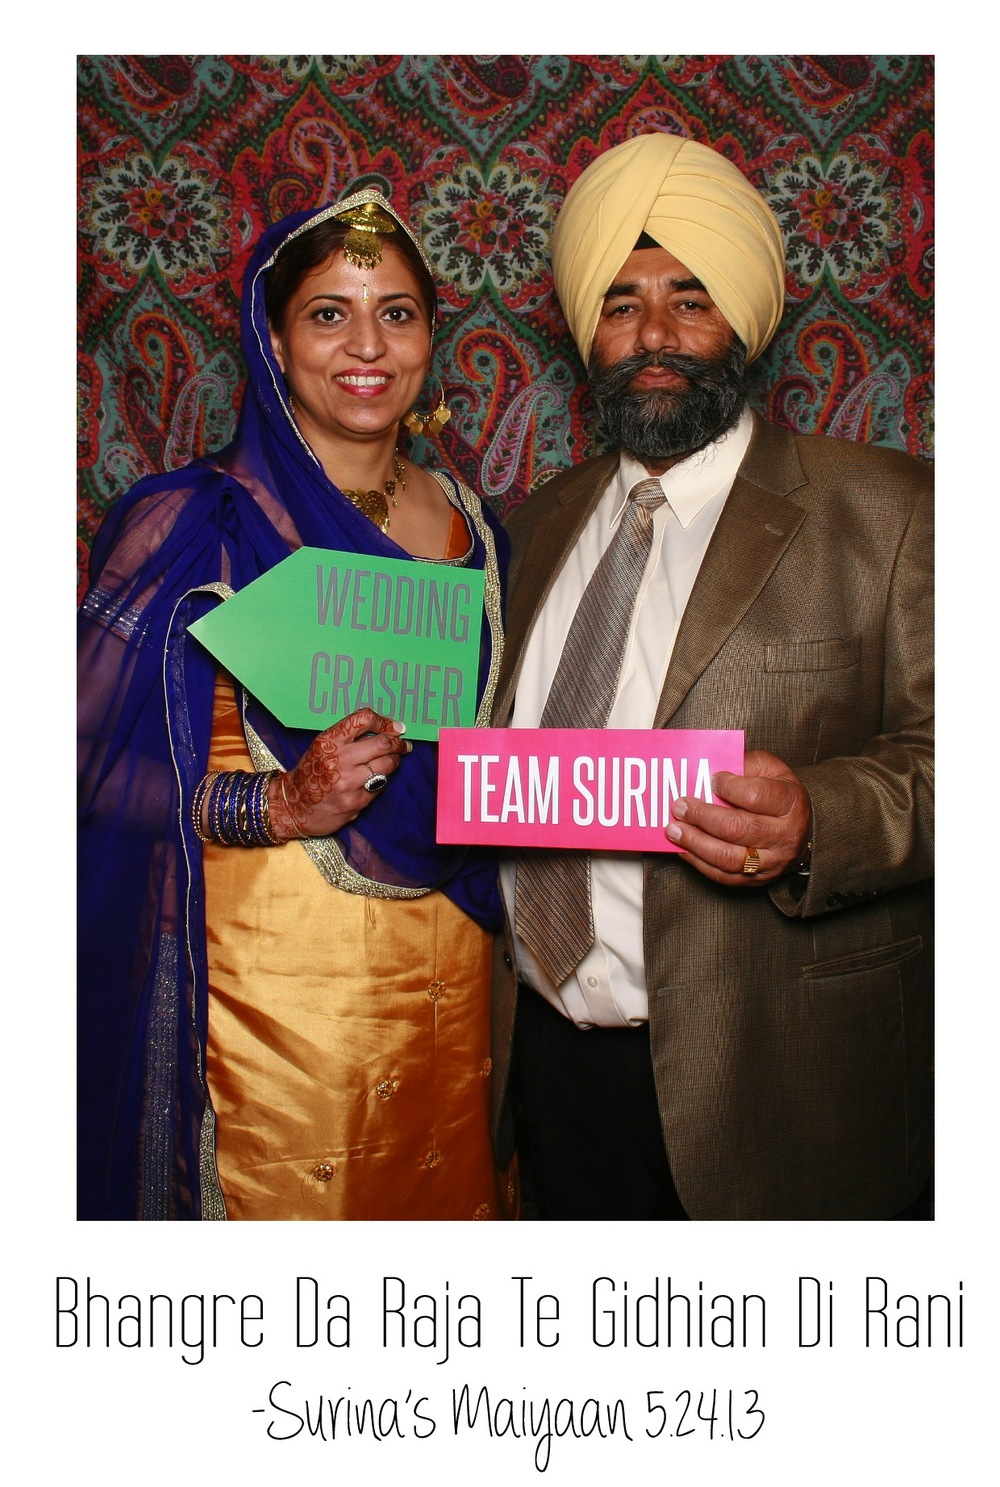 punjabi photo booth.jpg